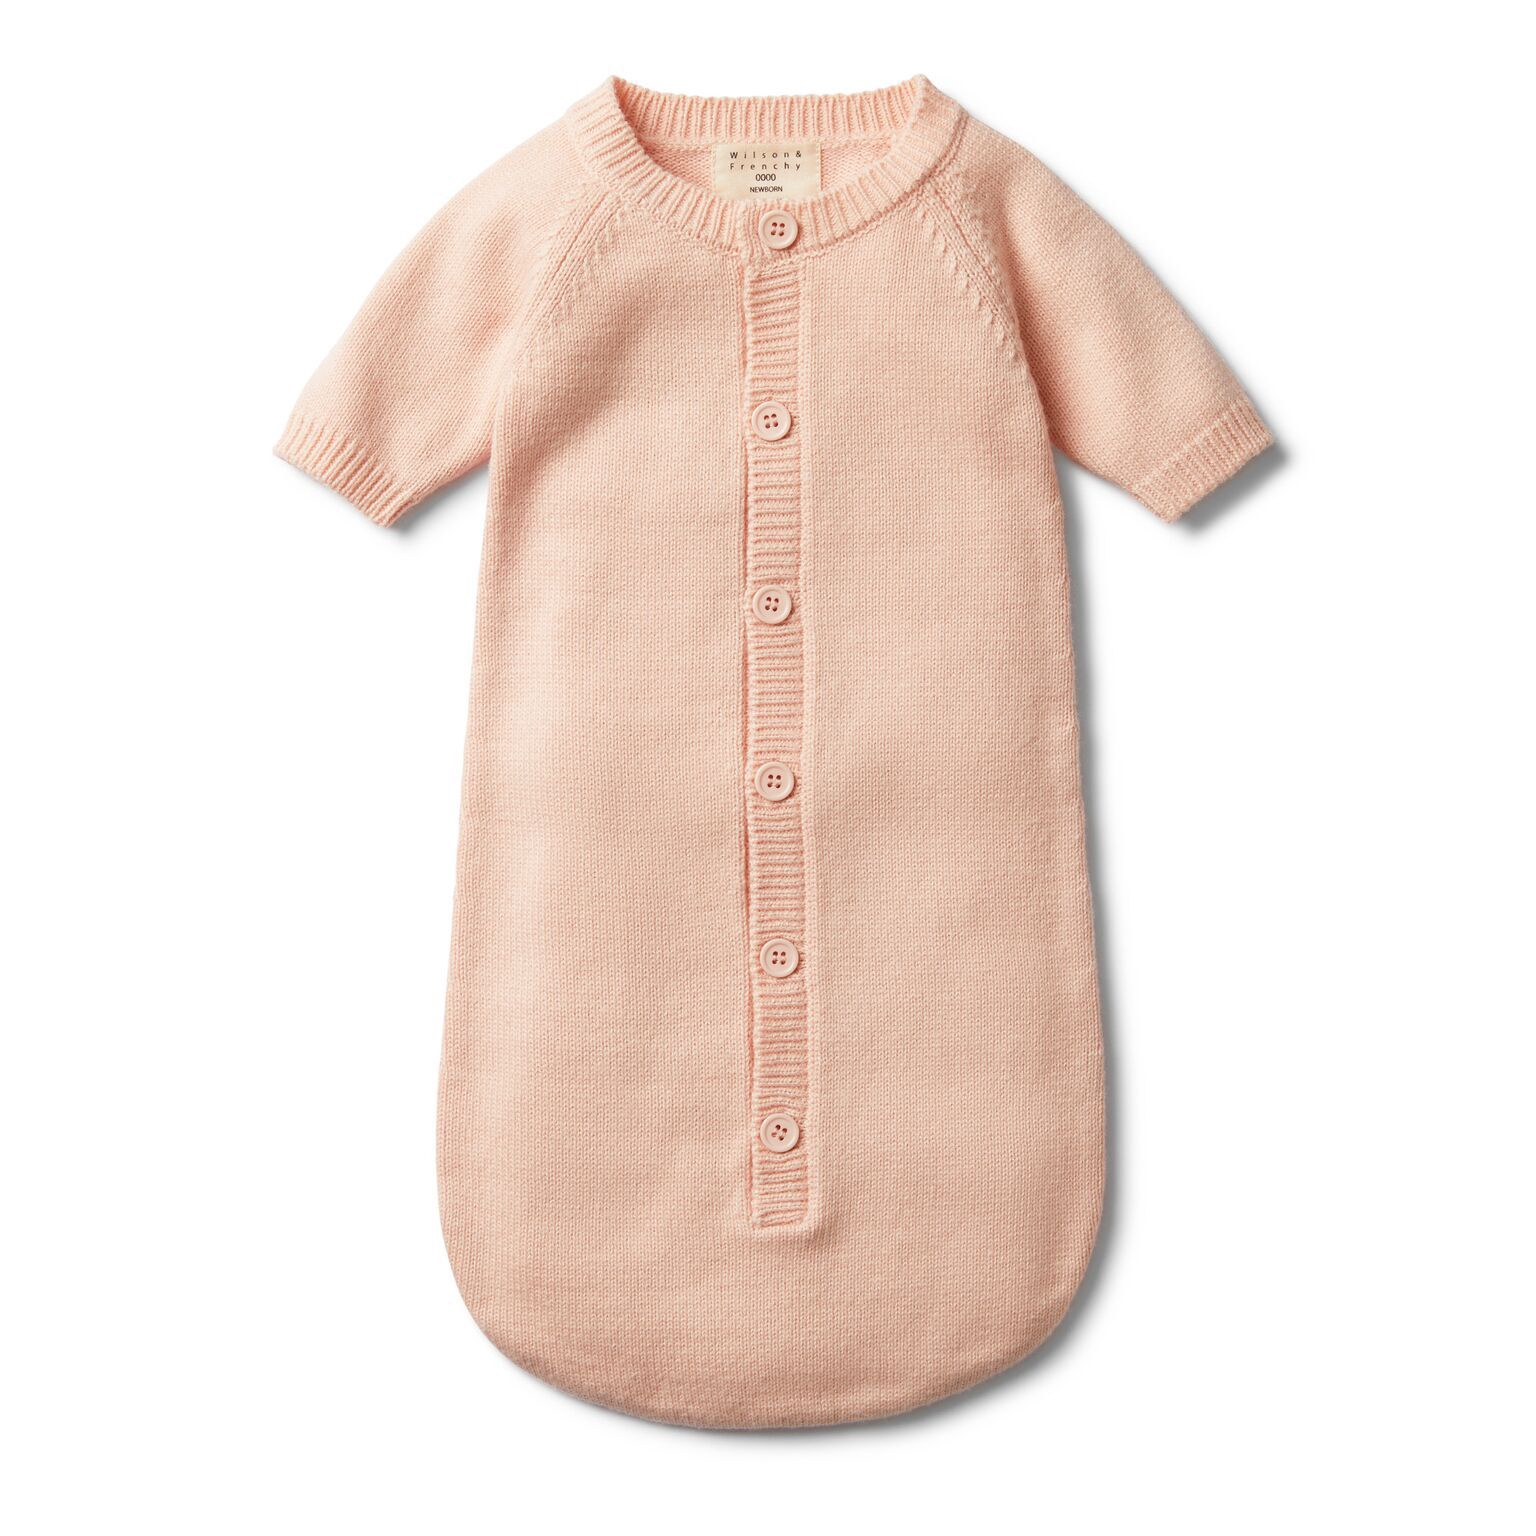 WF Peachy pink knitted cocoon sleeper